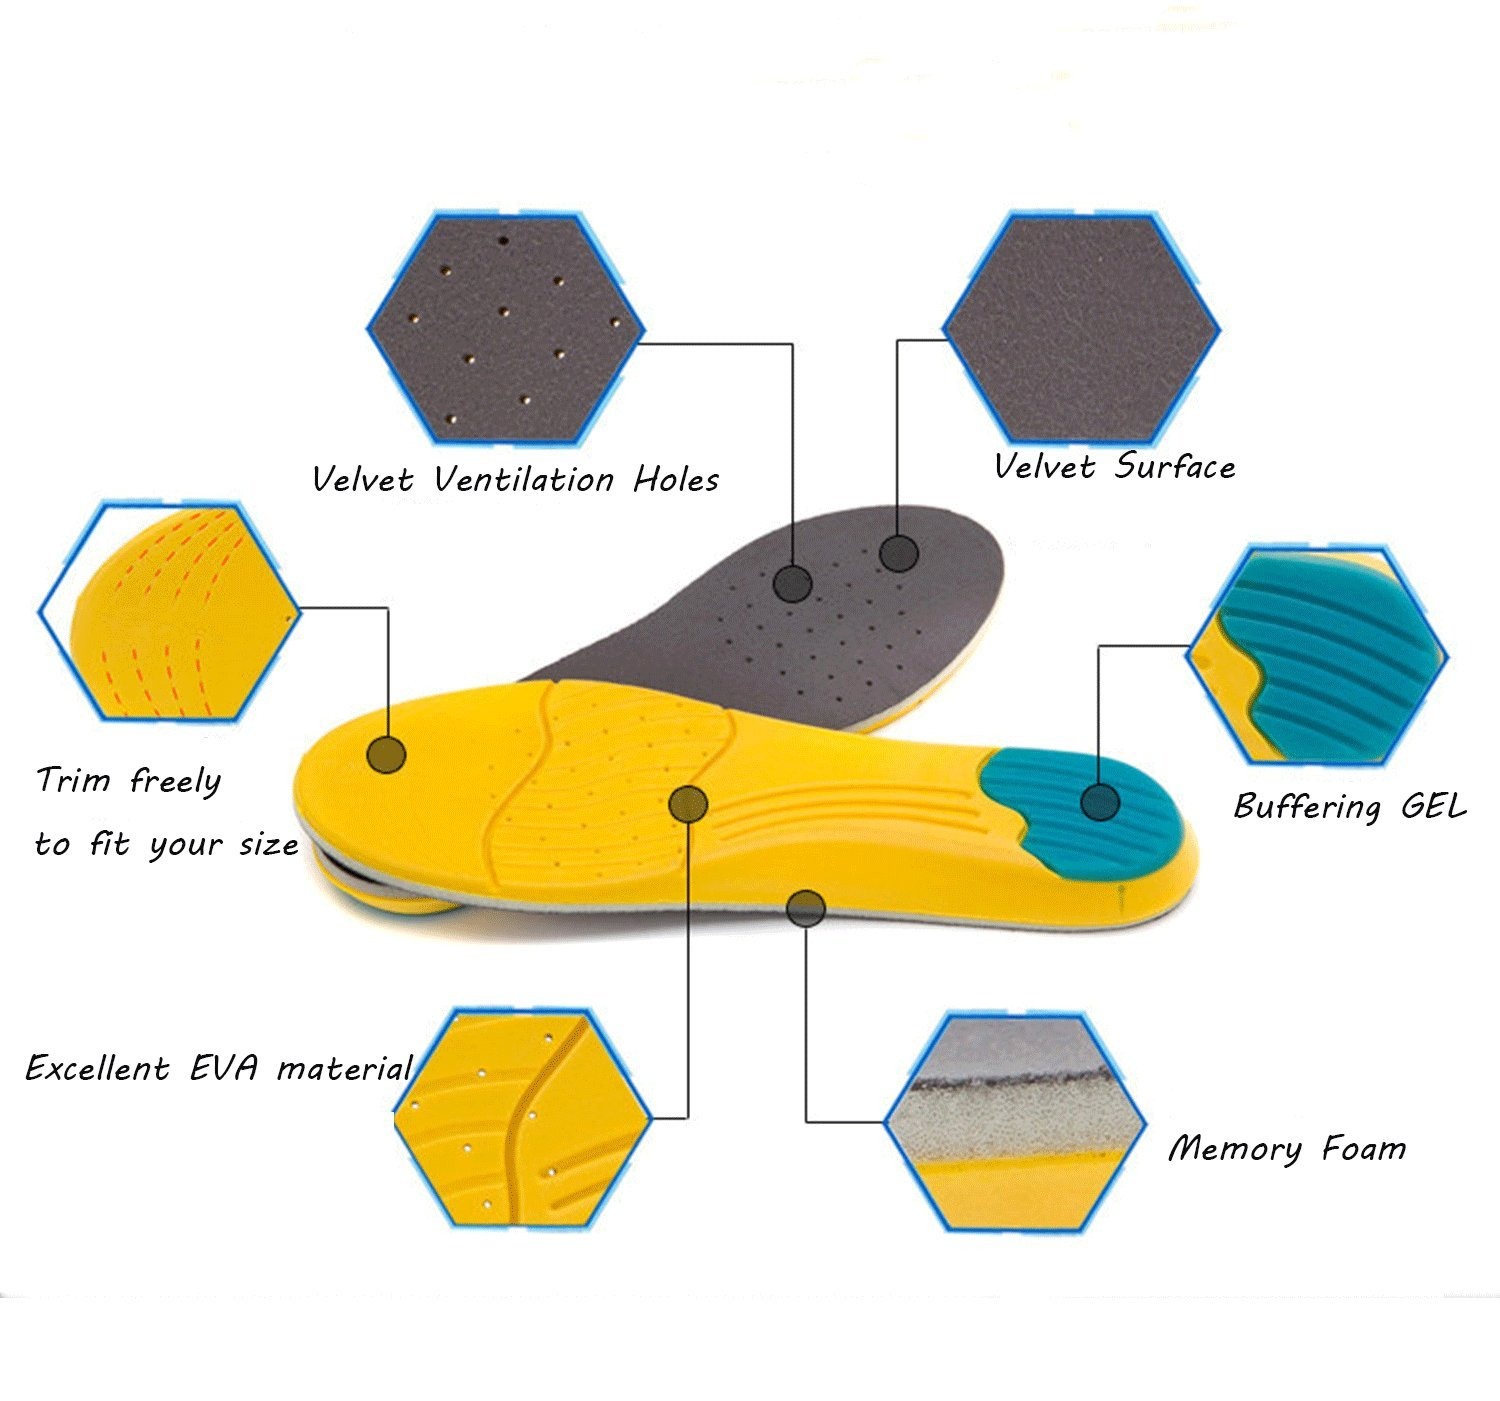 amazon com lyna trimmable relieve fatigue gel insoles shoes pad for outboard motor schematic amazon com lyna trimmable relieve fatigue gel insoles shoes pad for walking or doing sports(1 pair) (35 40) health & personal care